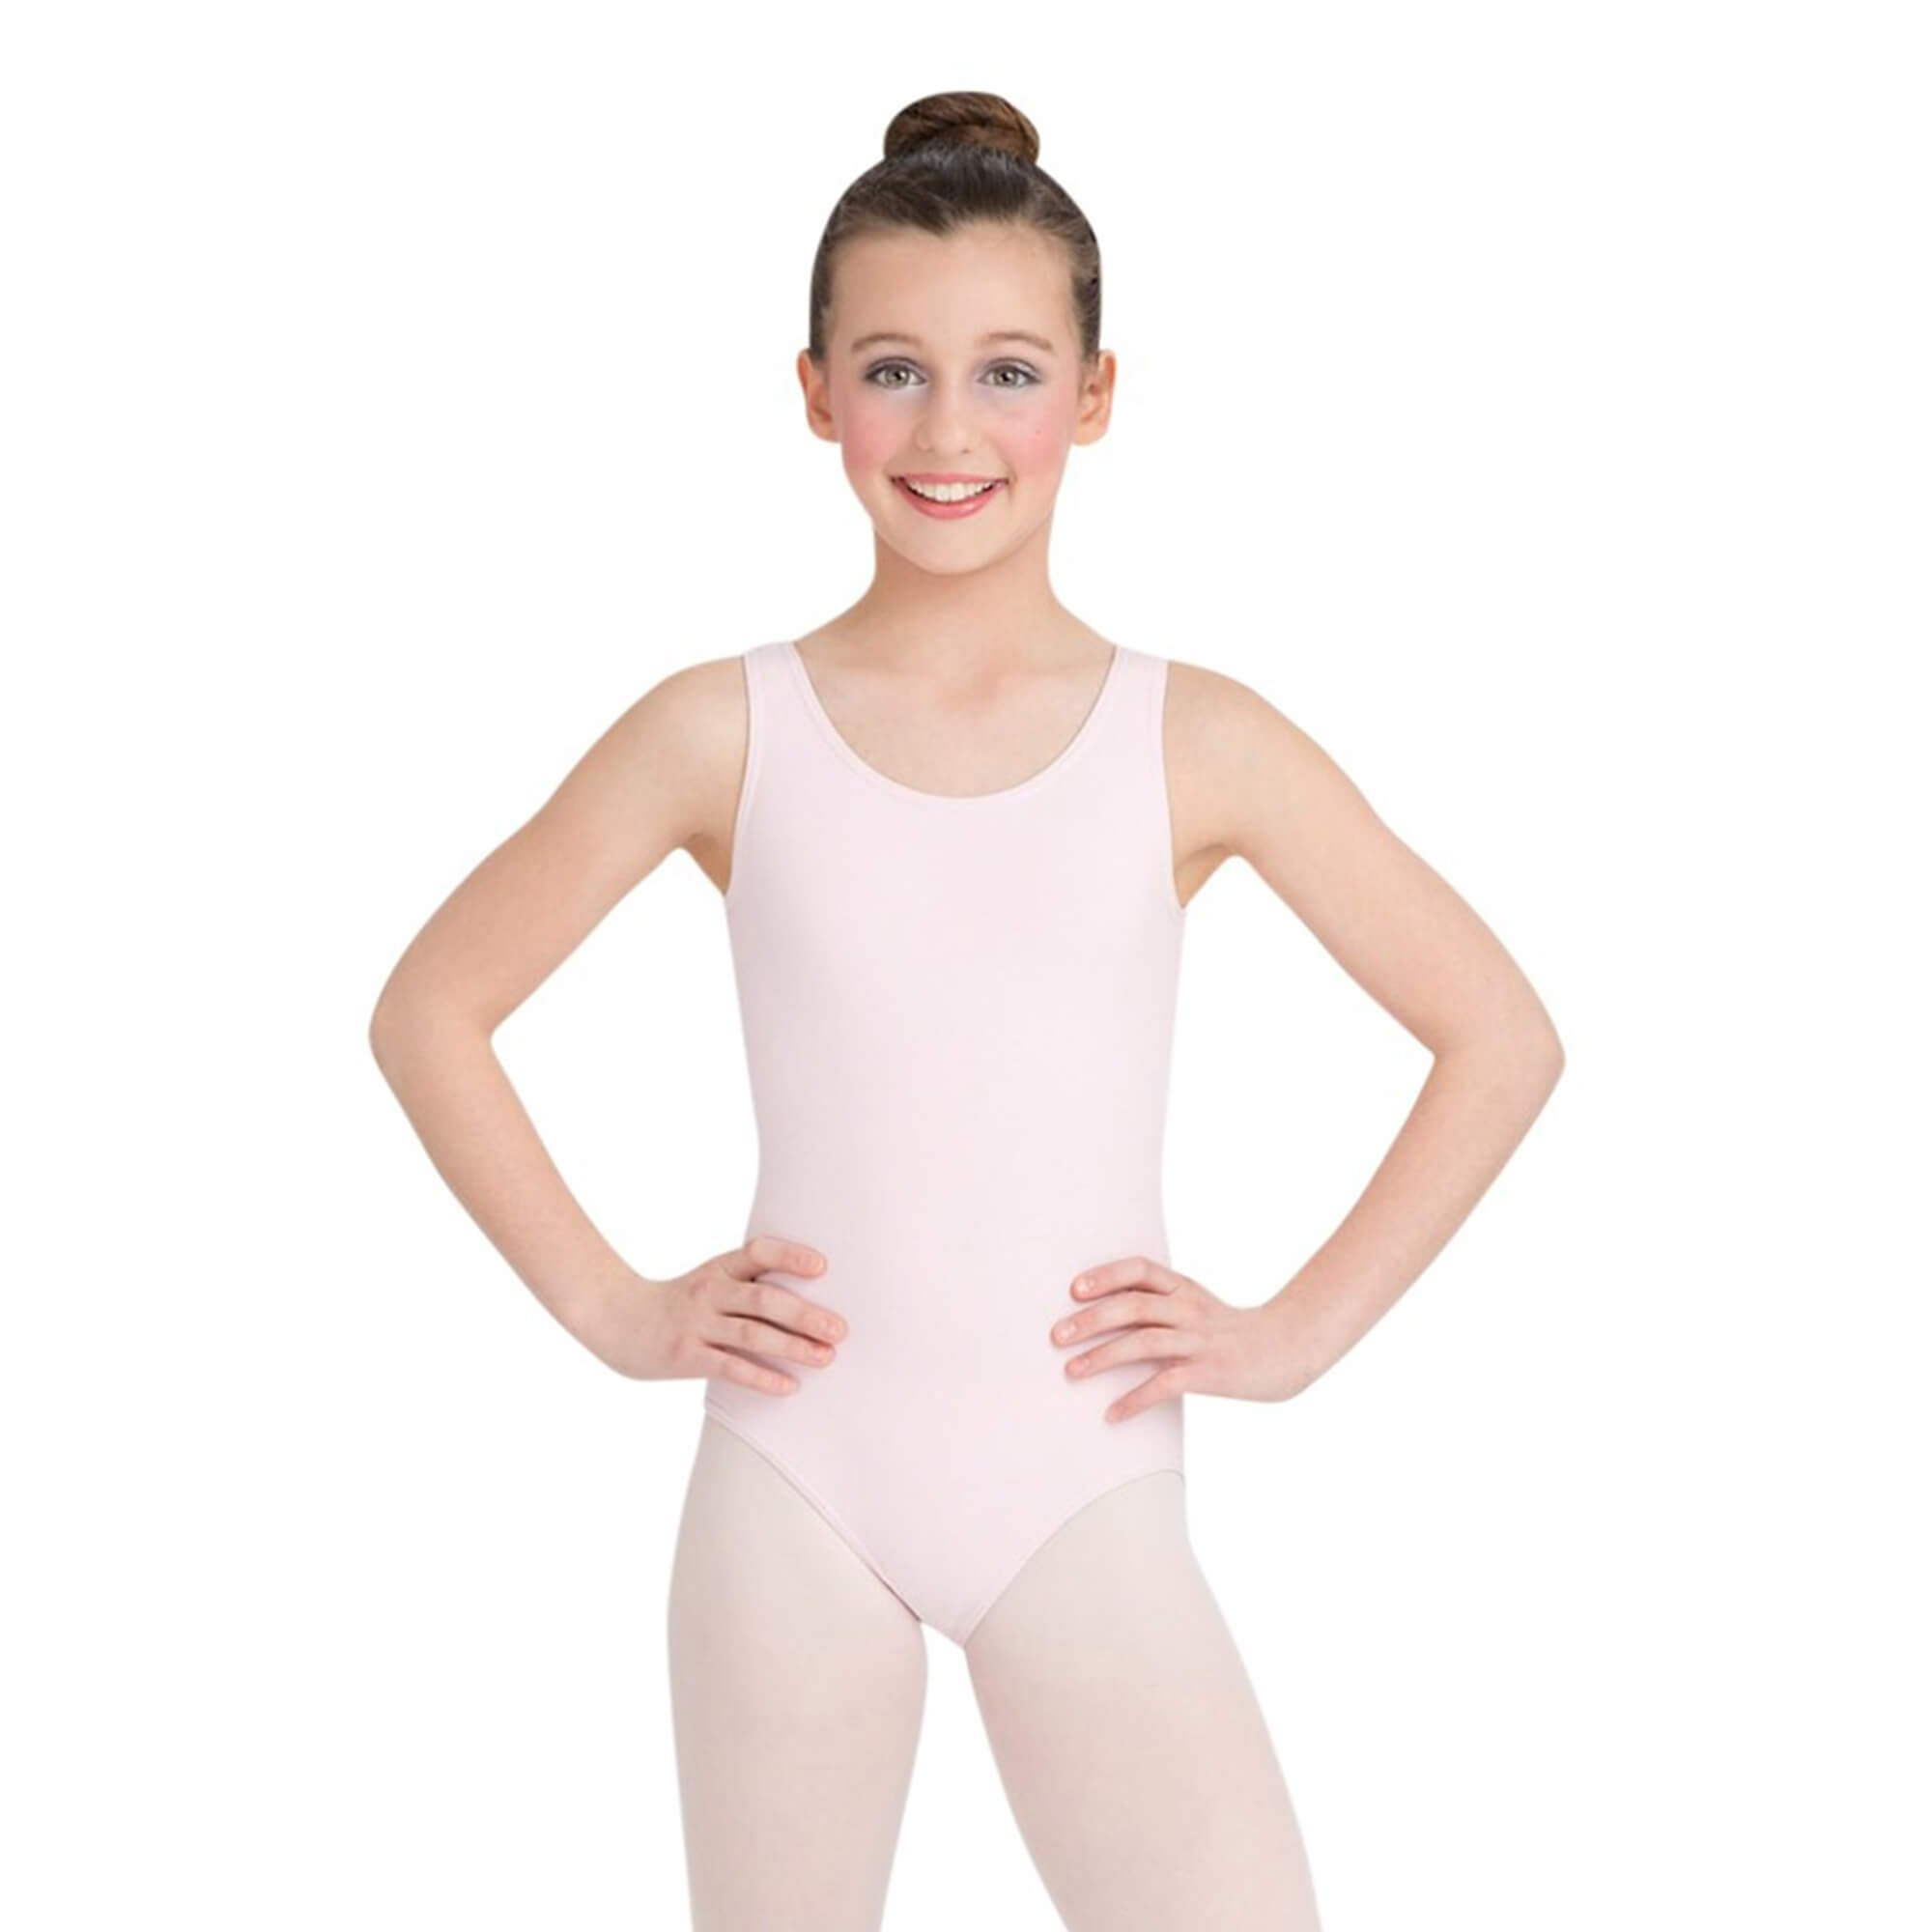 Capezio Girls' High-Neck Tank Leotard